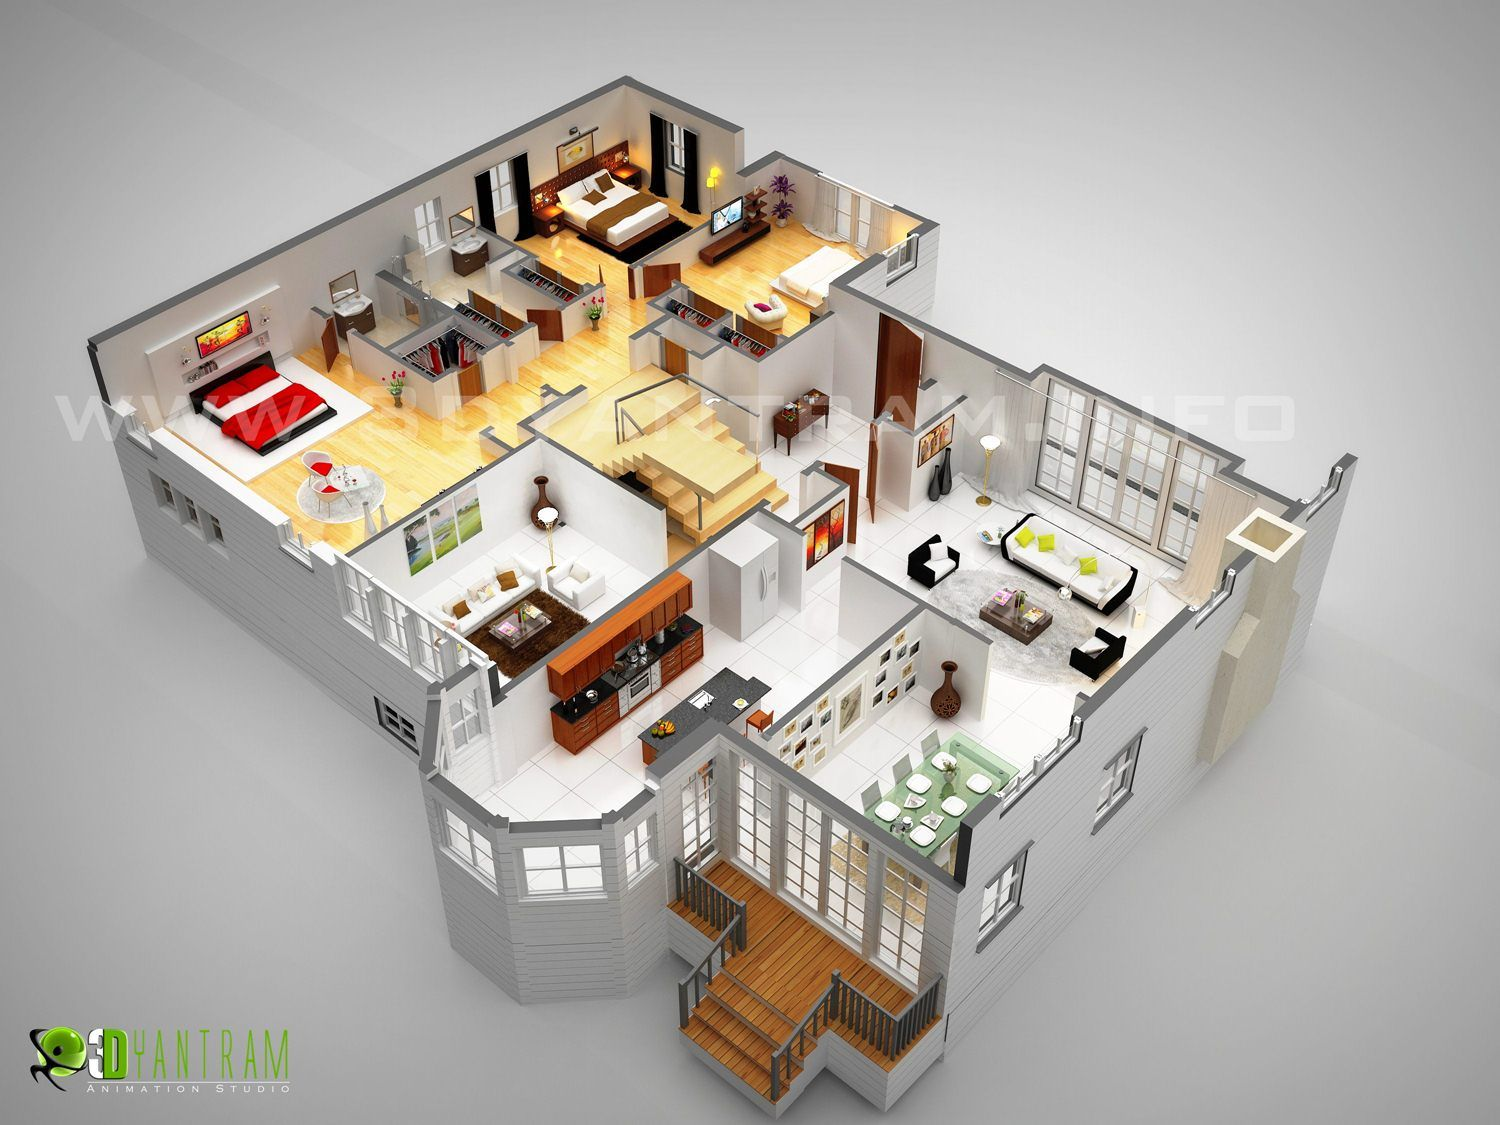 Laxurious Residential 3d Floor Plan Paris Sims: home plan 3d